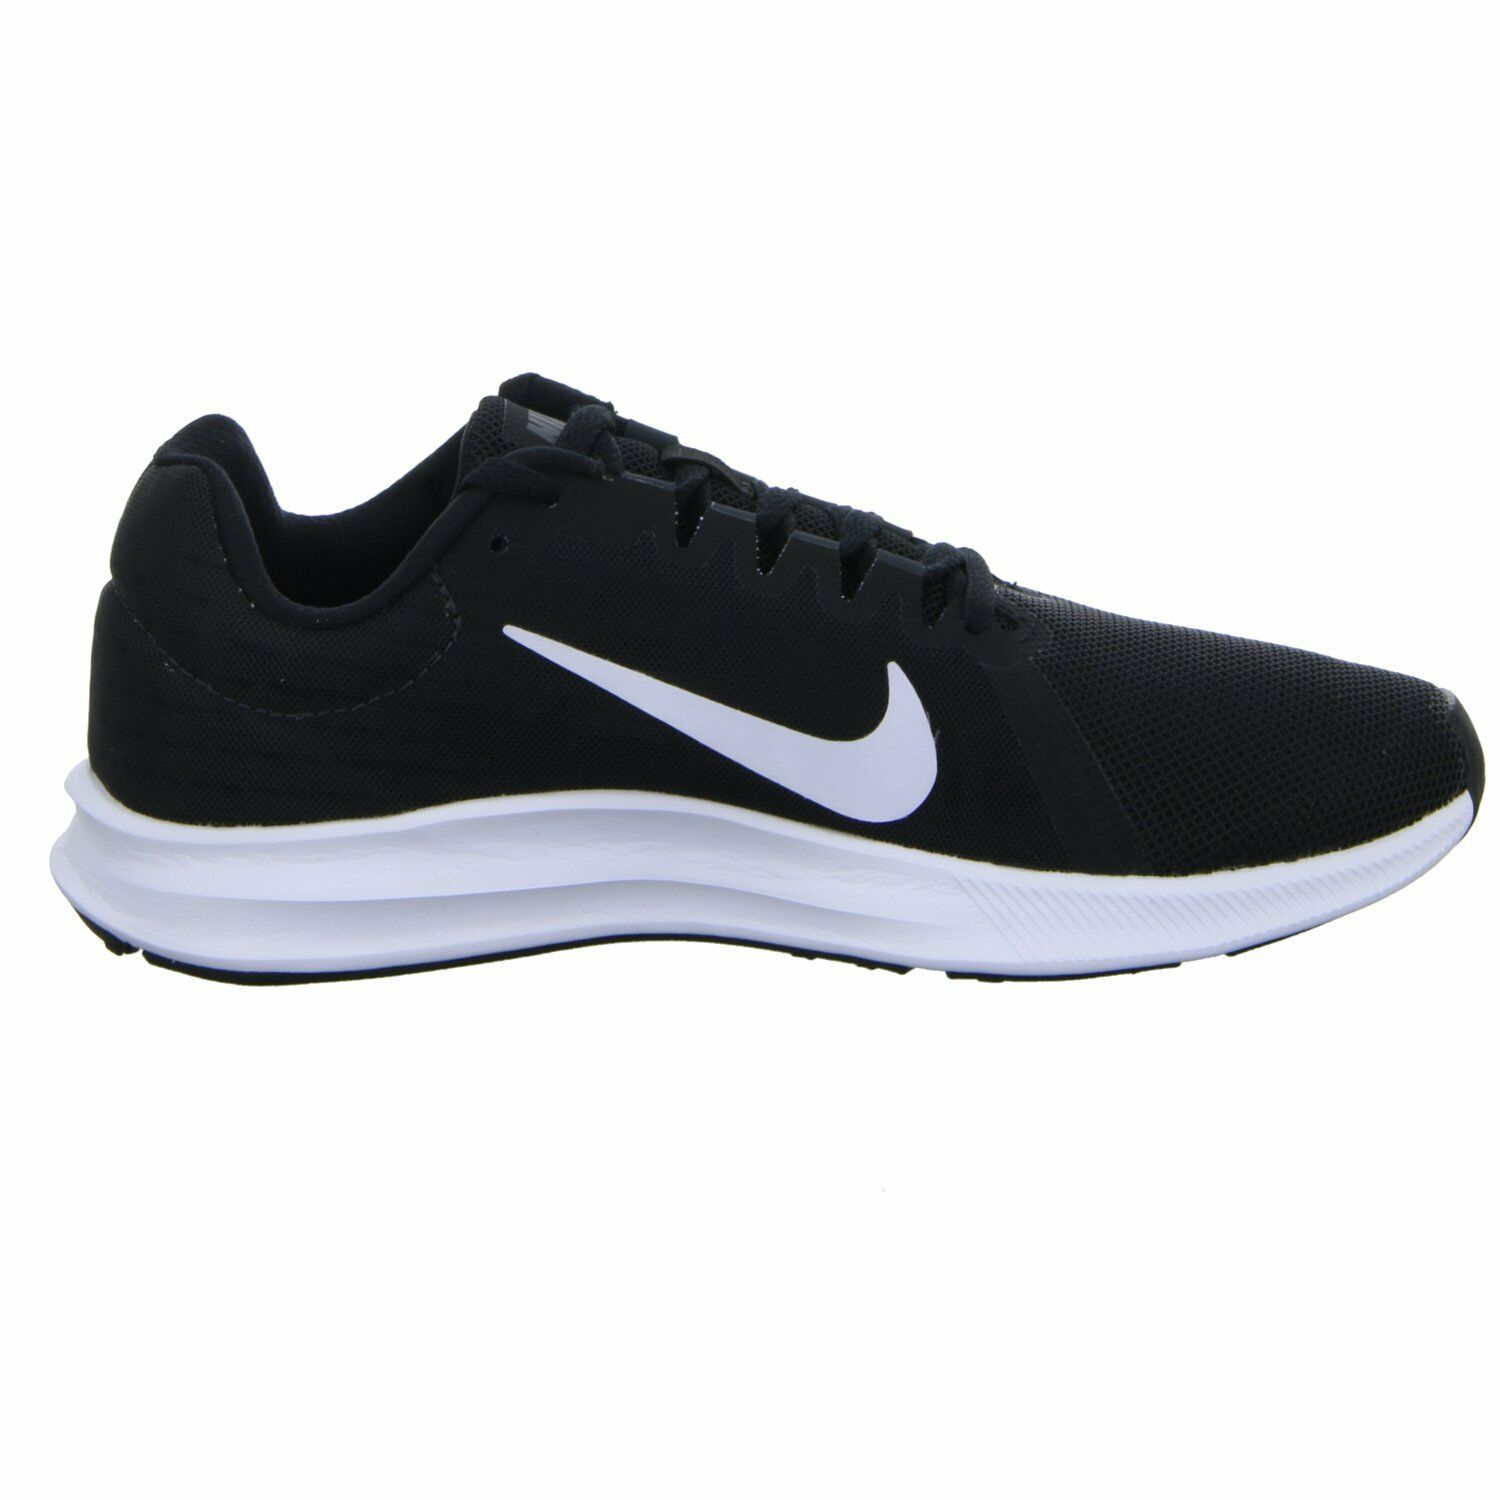 **LATEST RELEASE** Nike Downshifter 8 Womens Running Shoes Price reduction Price reduction